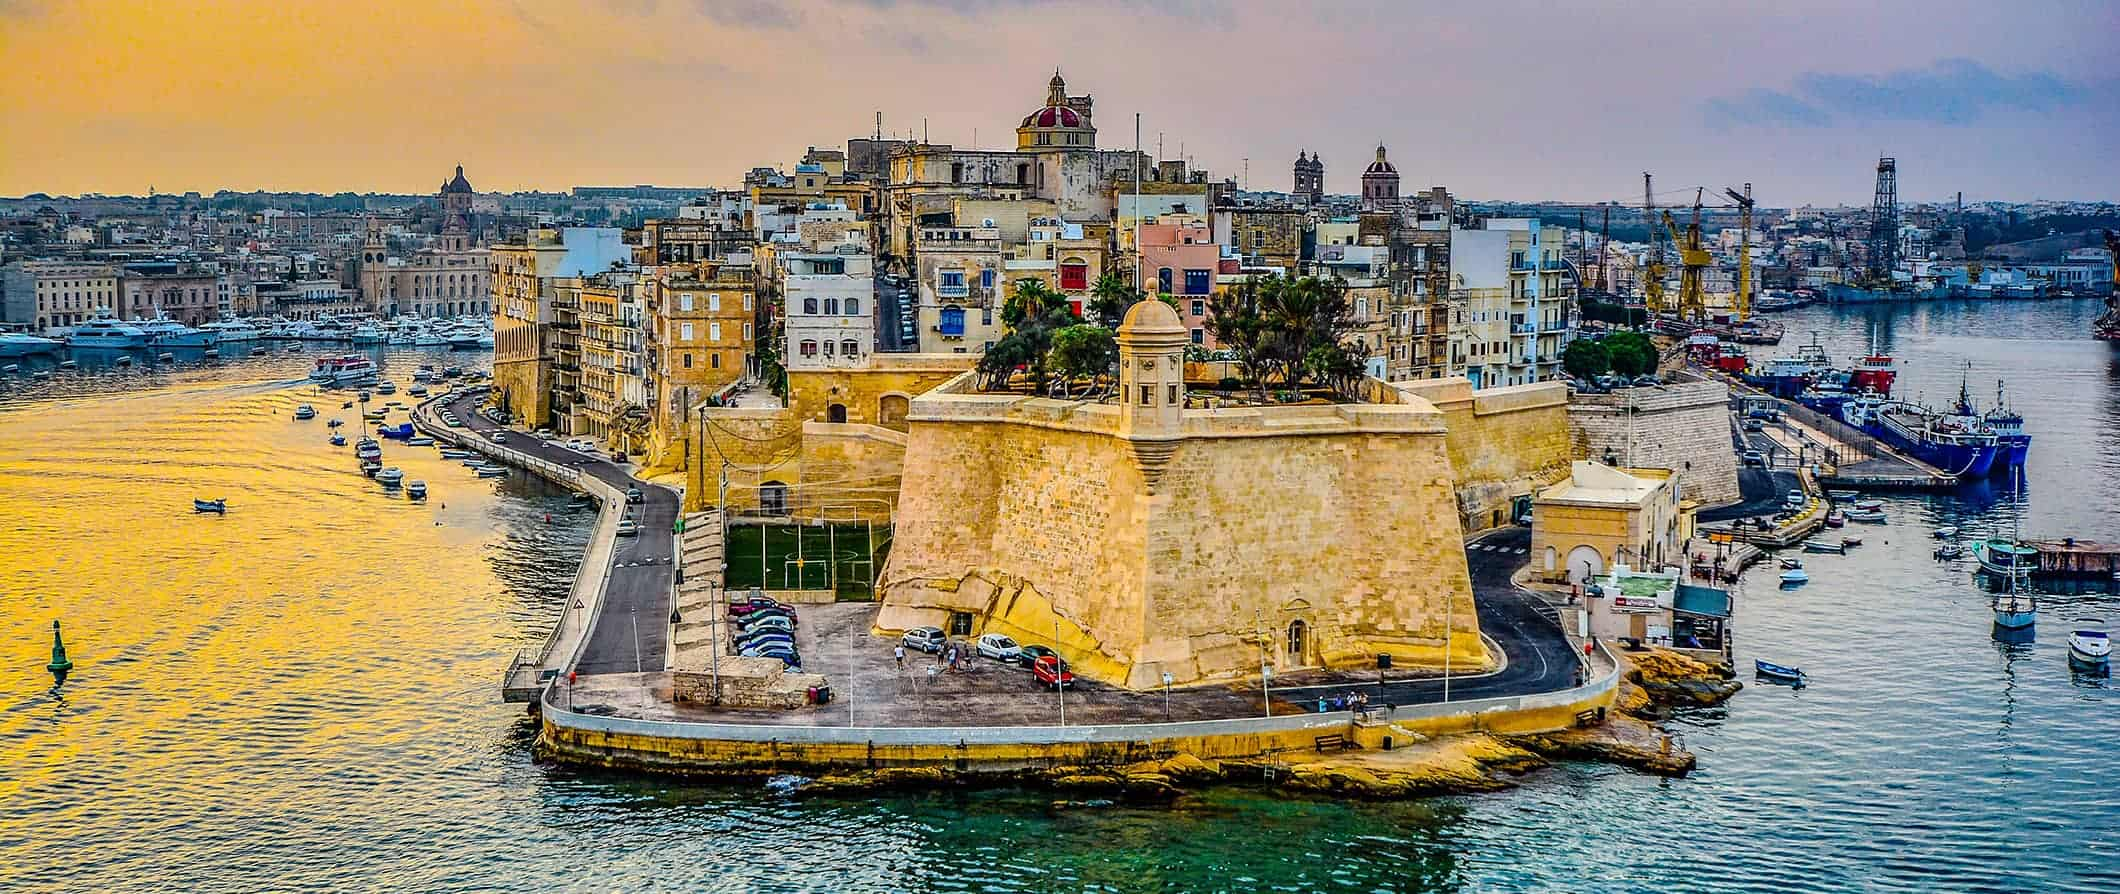 Malta Travel Guide: What To See, Do, Costs, & Ways To Save